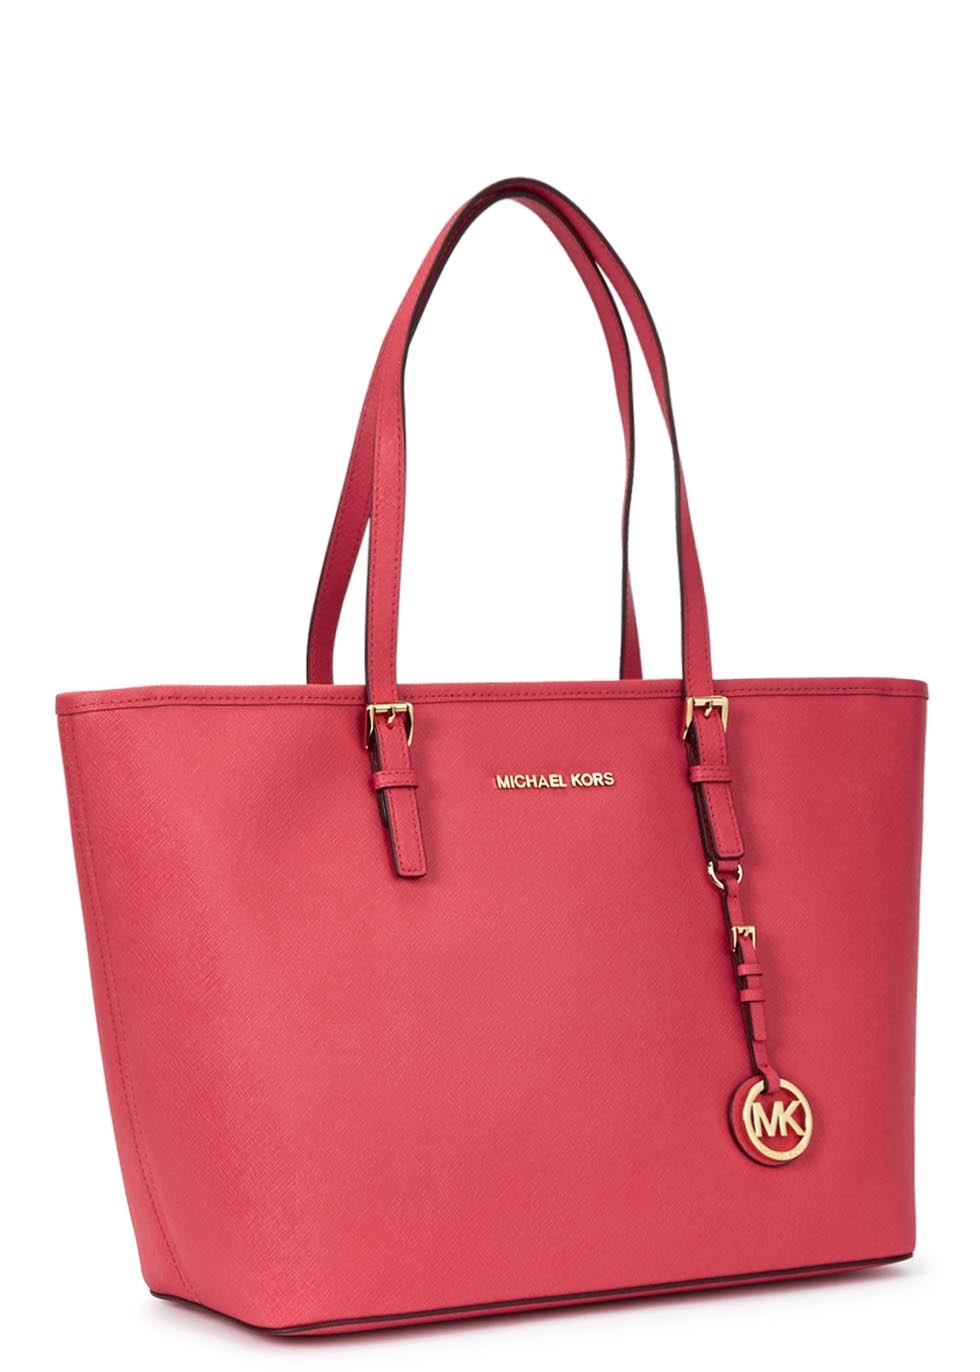 658b84c90b9721 ... low price michael kors jet set travel coral leather tote in pink lyst  13941 03ca4